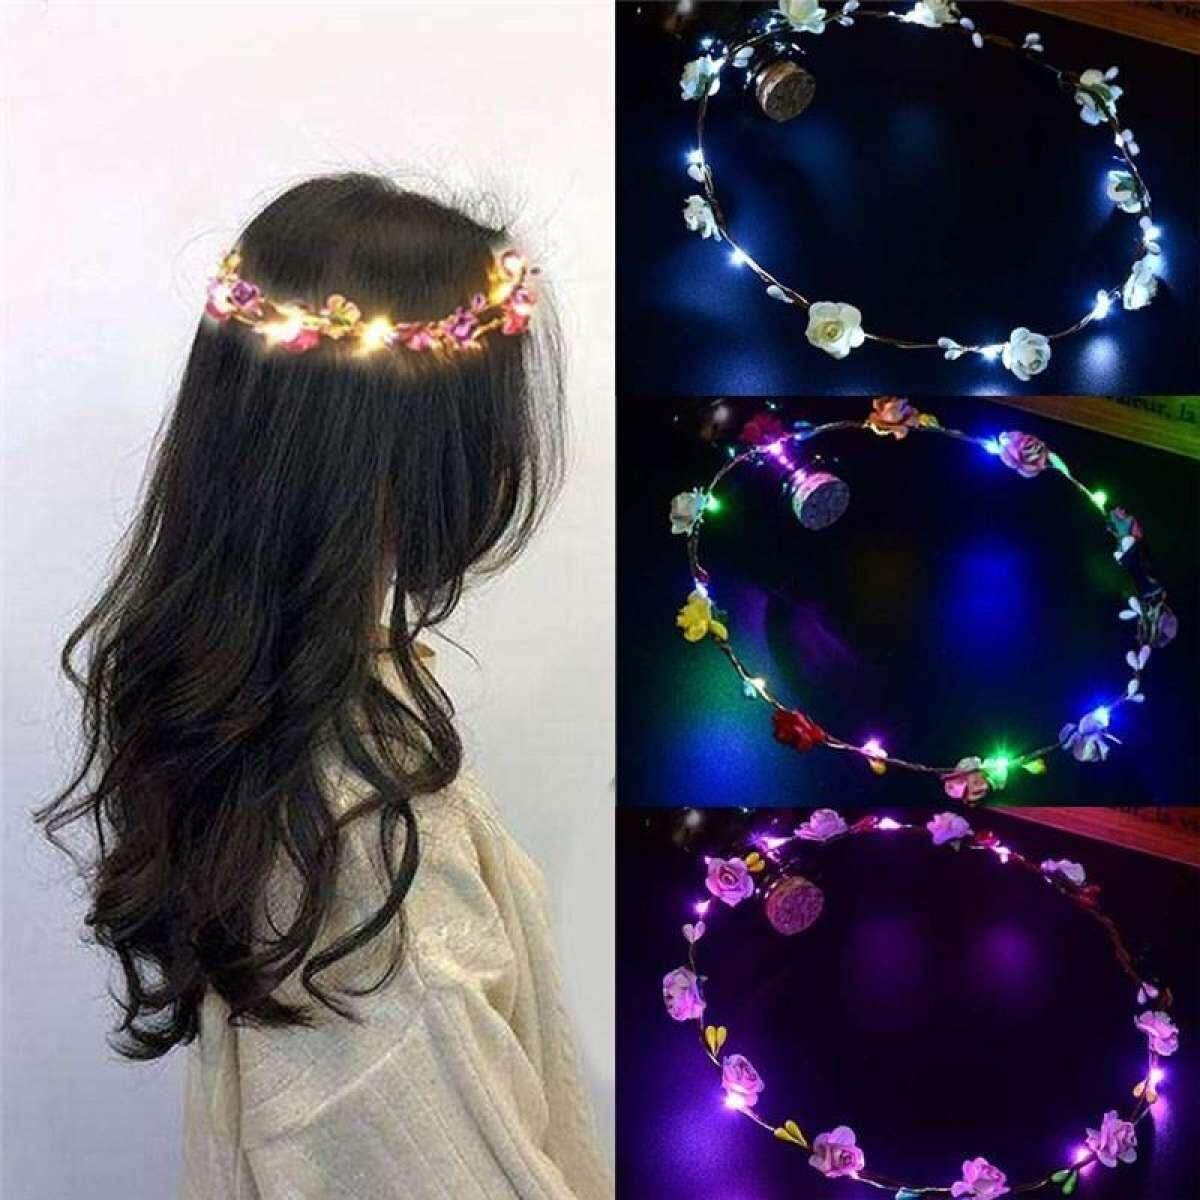 71180a440c6b0 Led Flower Crown Headband with 3 Lighting Modes Glowing Headpiece, Light Up Flower  Headbands for